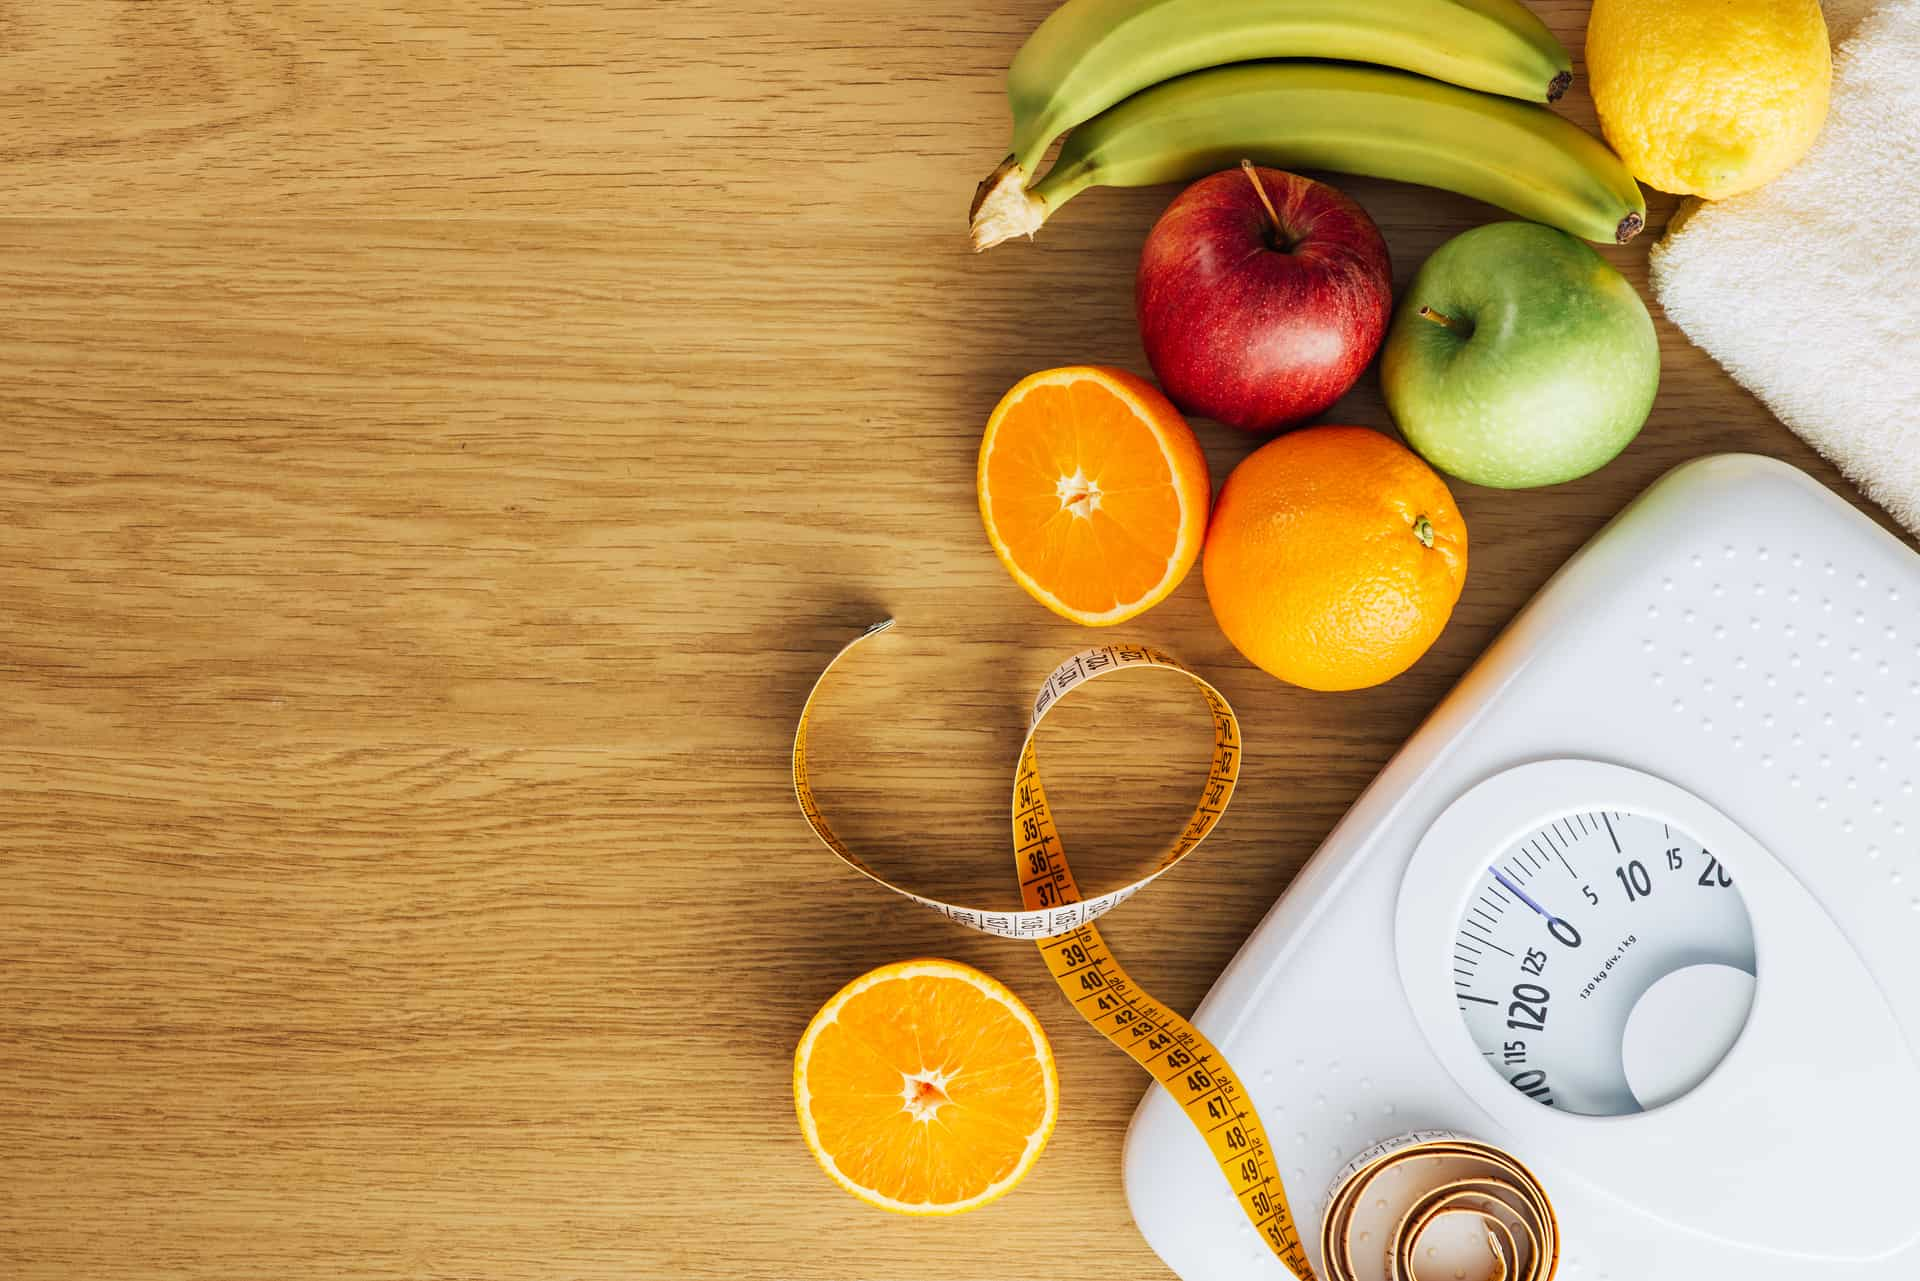 Get Fit: Content Marketing To Grow Your Health and Wellness Company